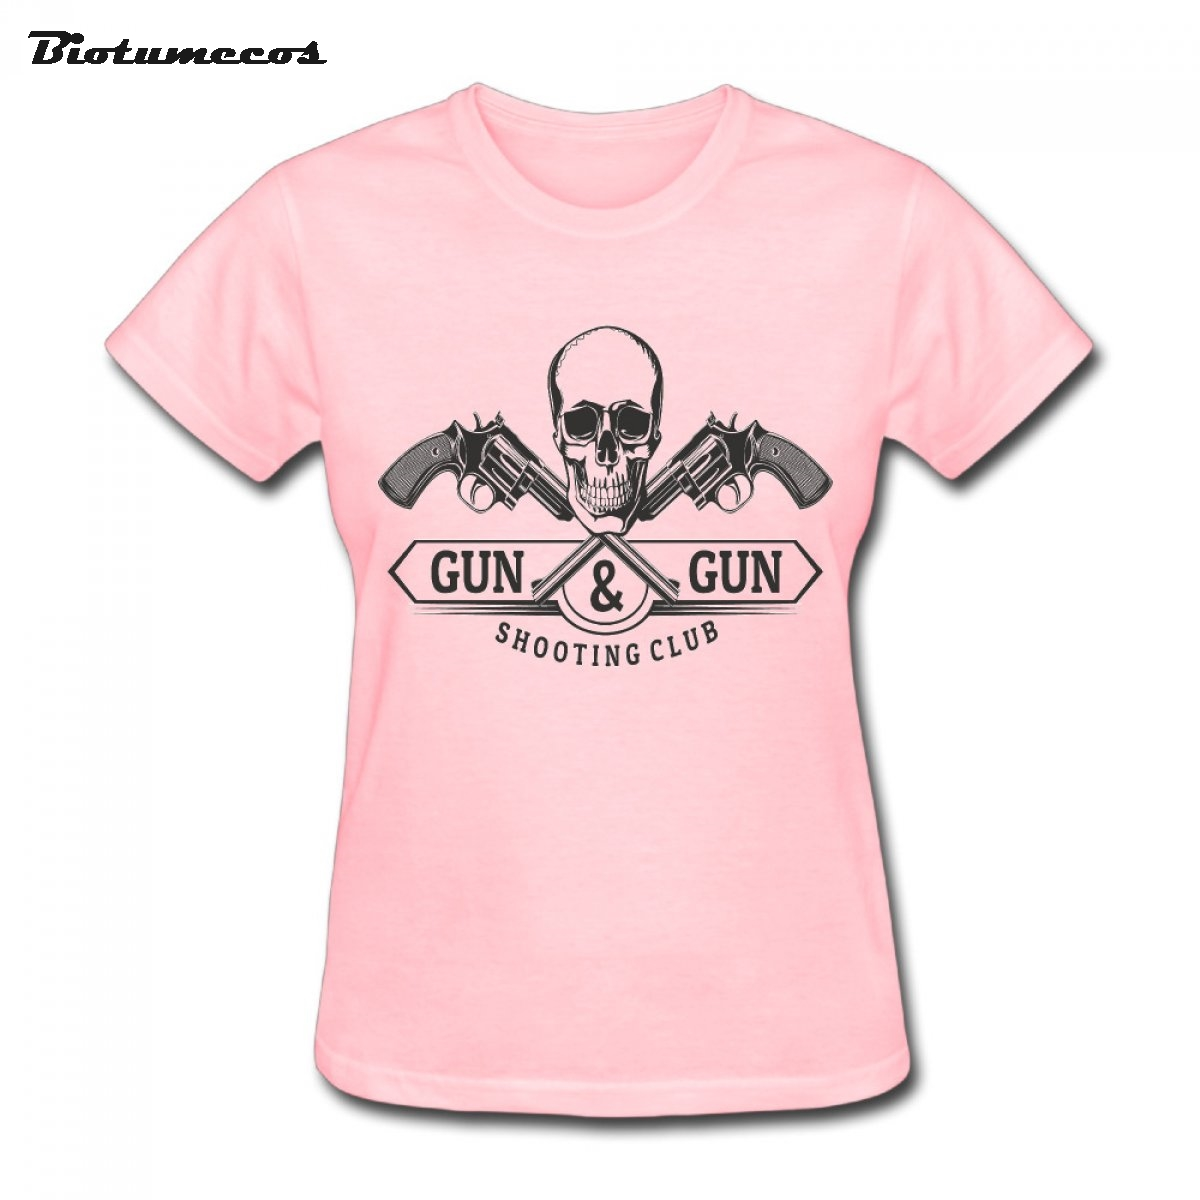 Hot Sales Women T Shirts 100% Cotton Gun & Gun Skull Shooting Club Printed Fashion Clothes Tee Top For Lady WTWQ059